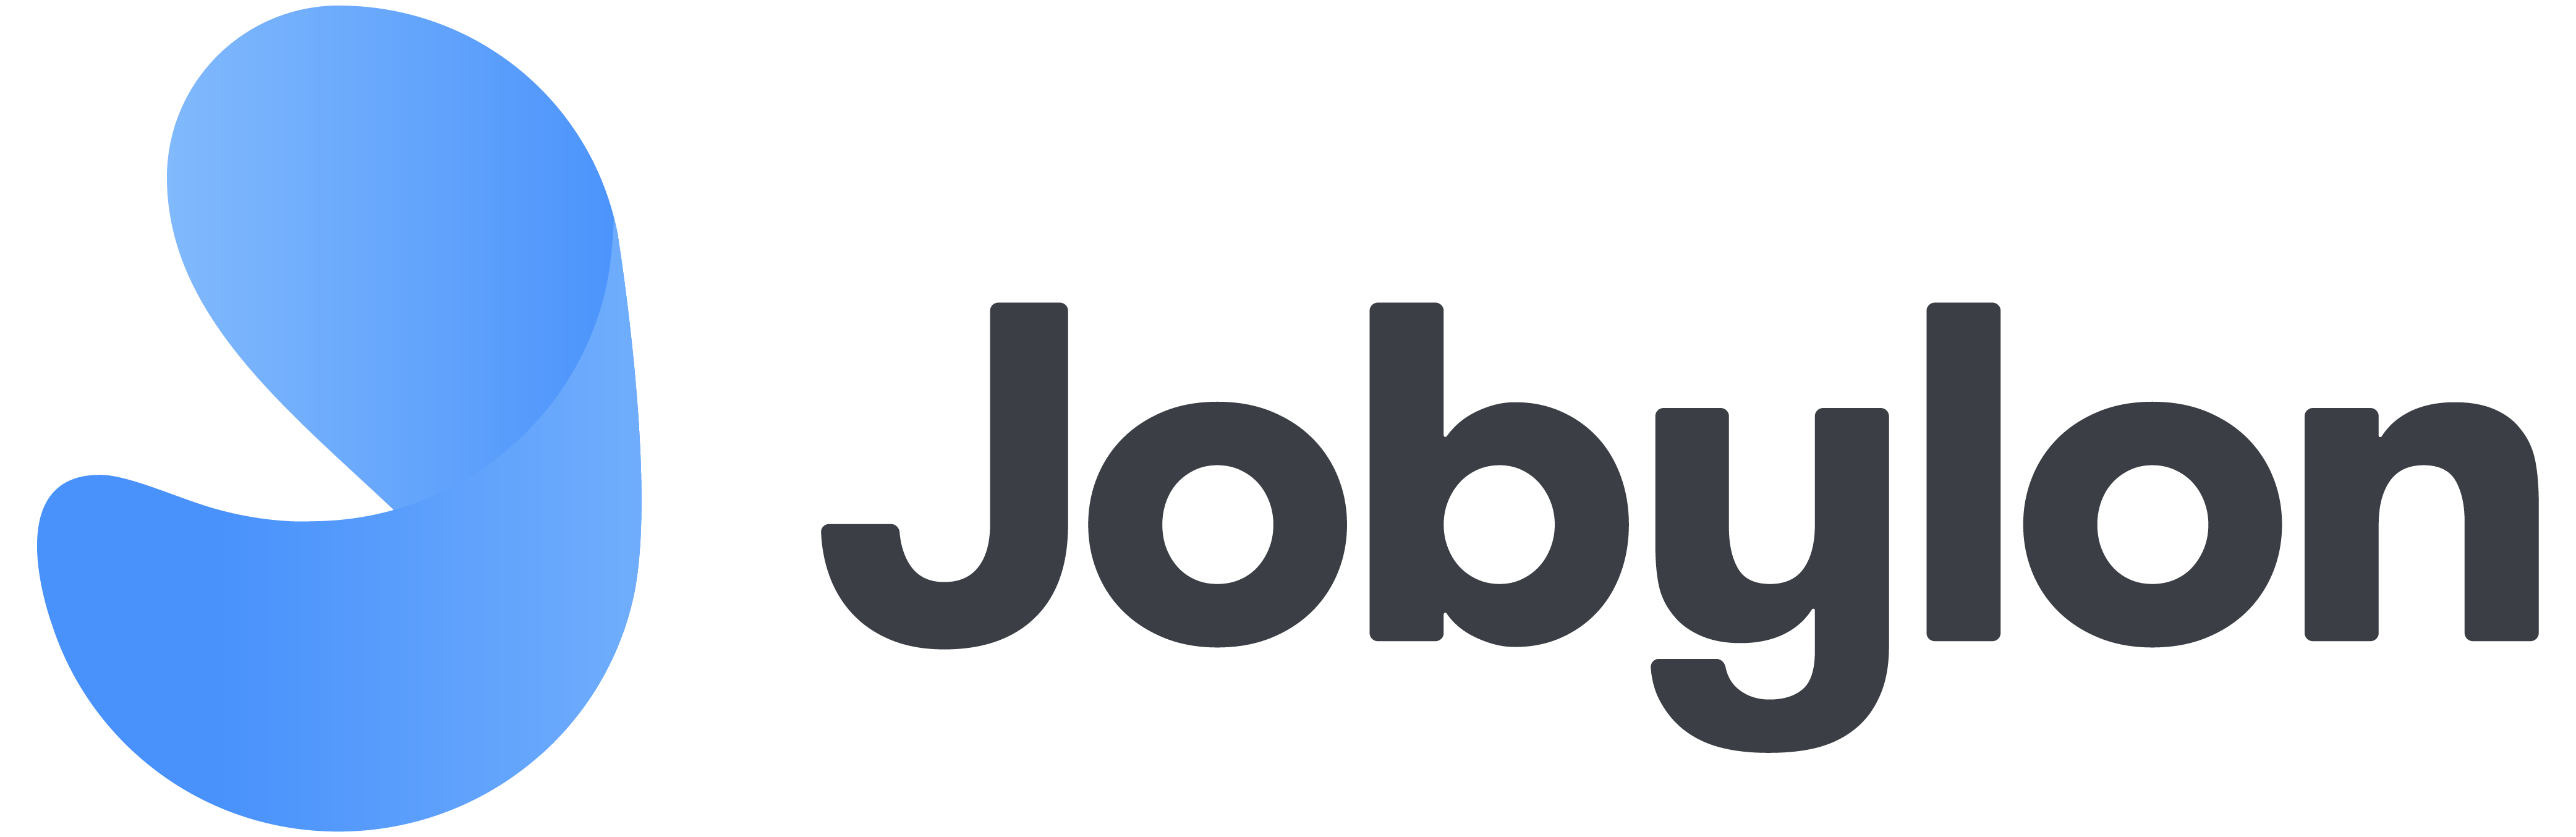 APPLICANT TRACKING SYSTEMS (ATS) - Colour_wordmark_RGB.png